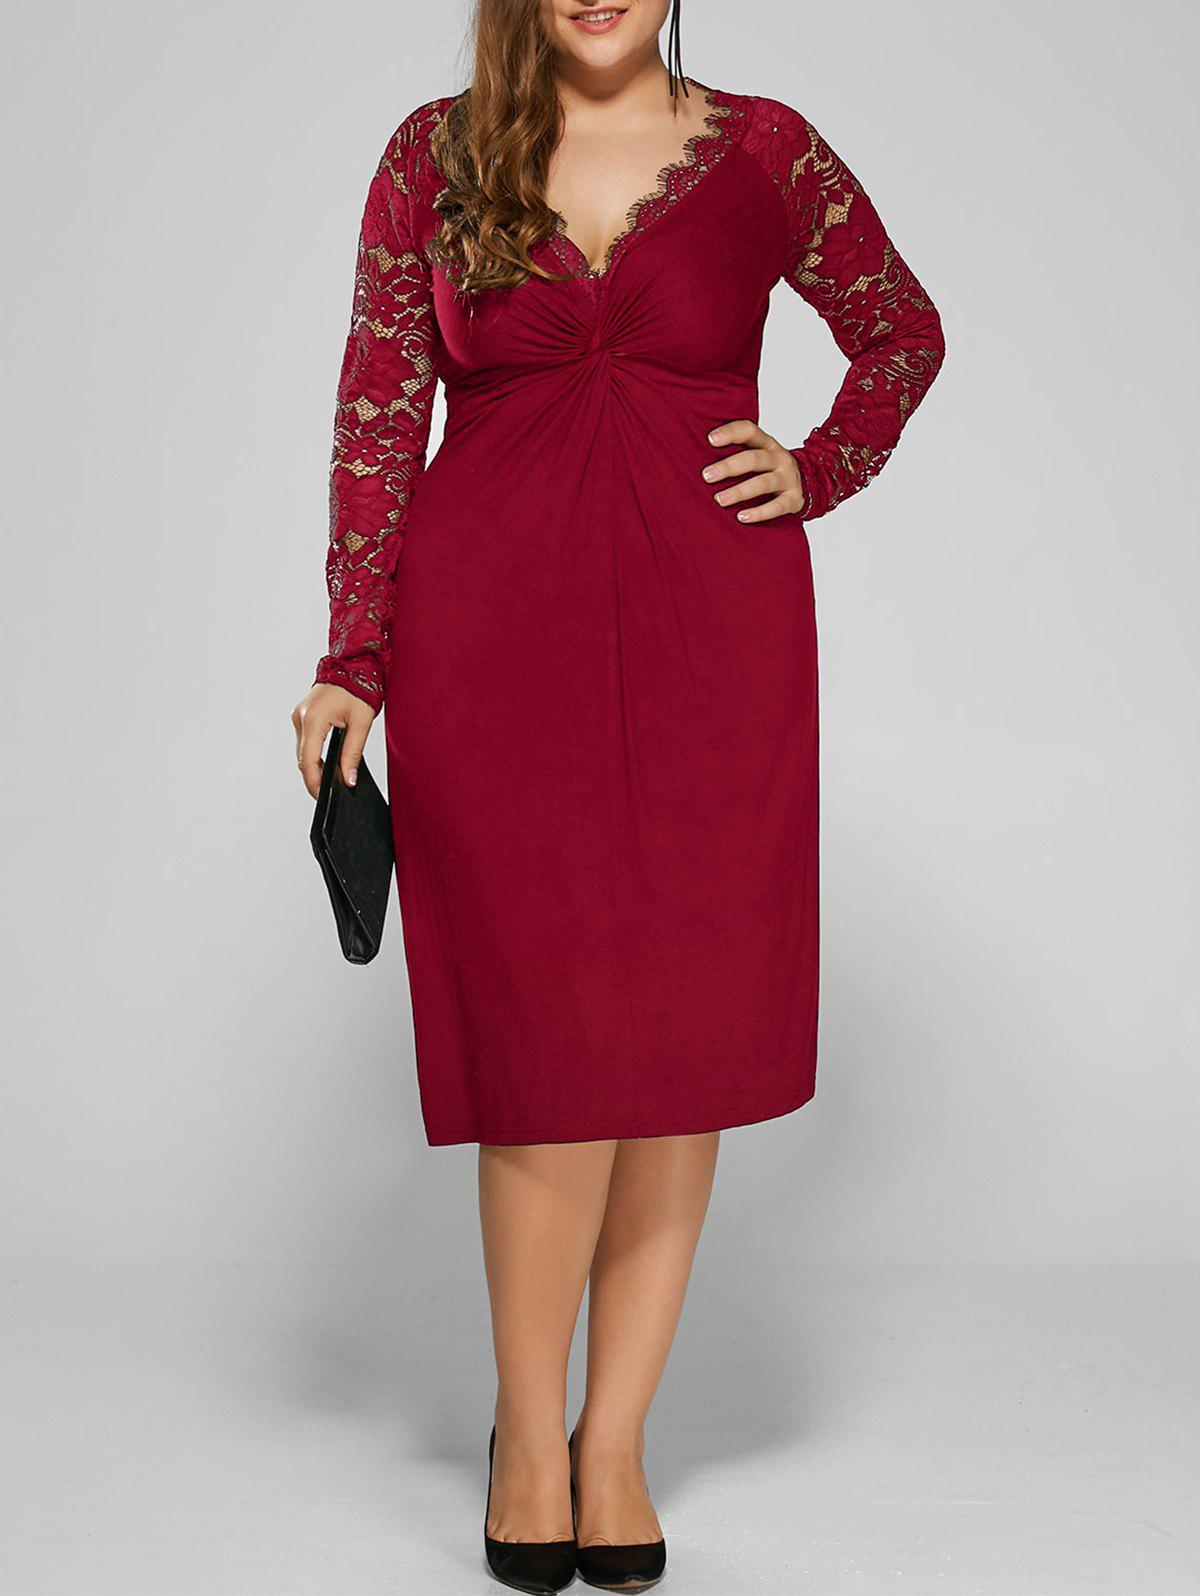 Plus Size Twist Front Lace Insert Fitted Dress - RED 4XL